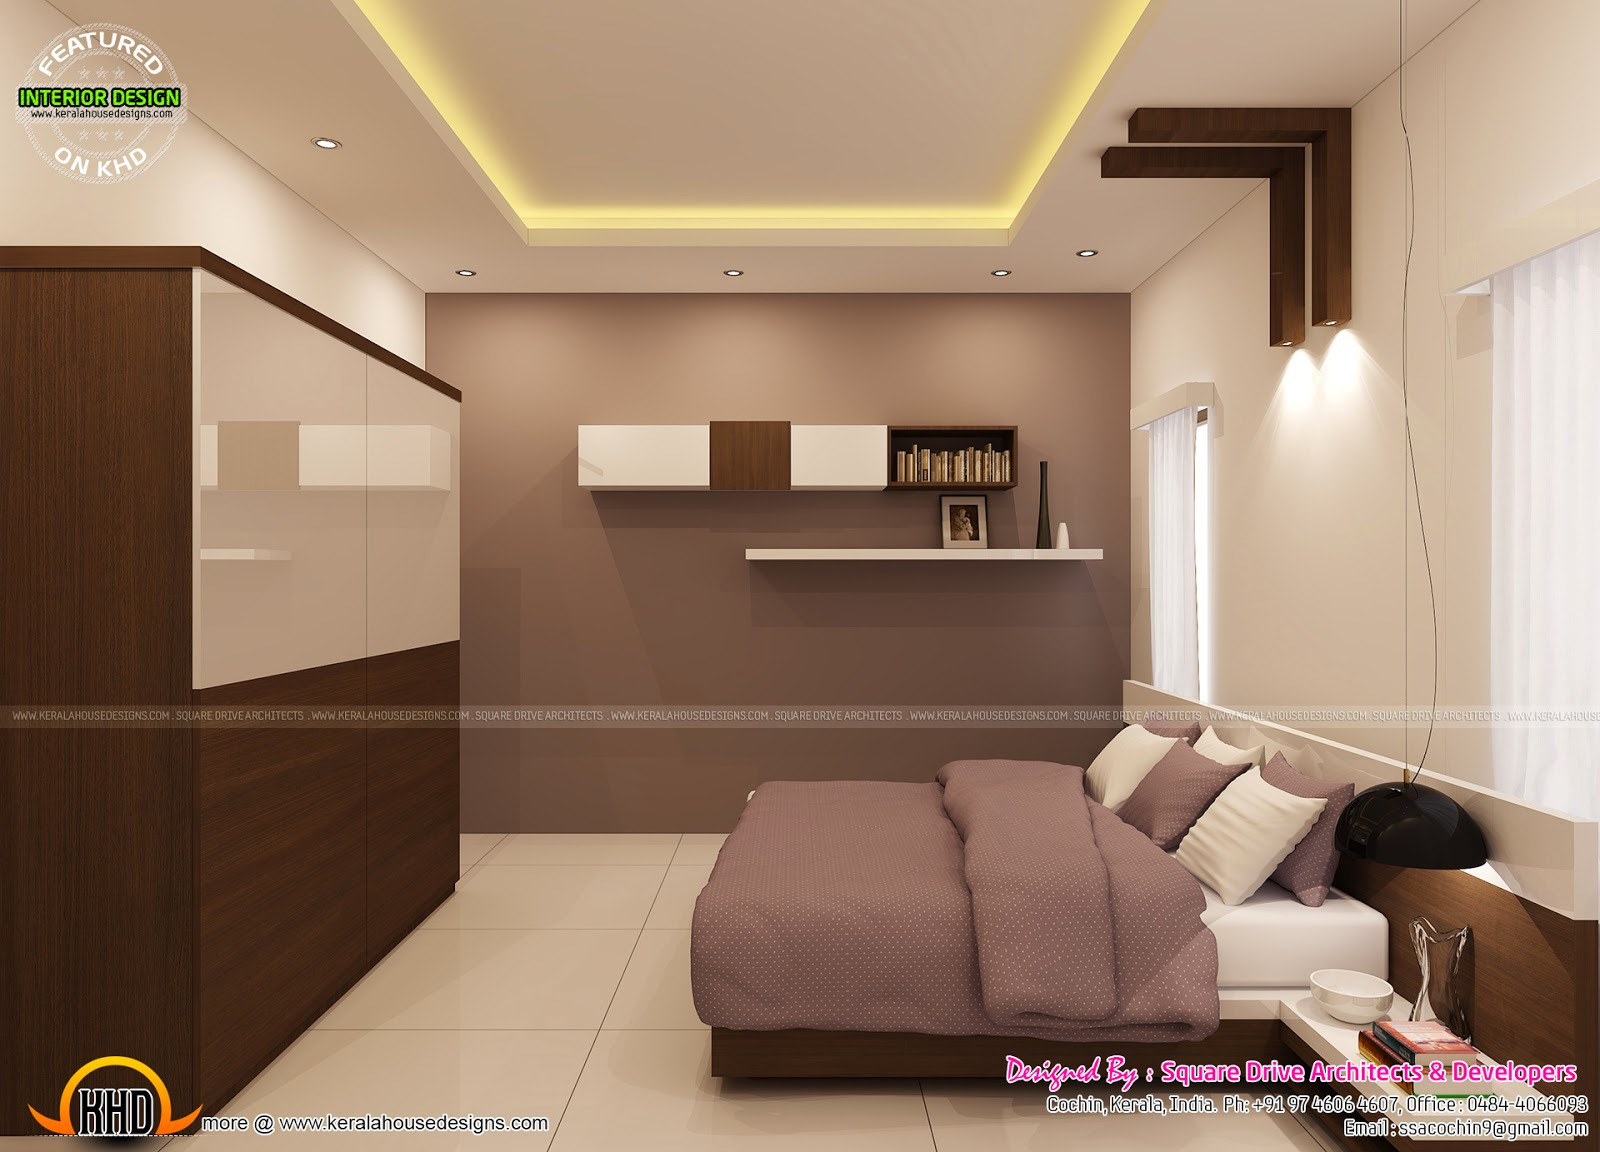 Bedroom interior decoration kerala home design and floor Home interior design bedroom